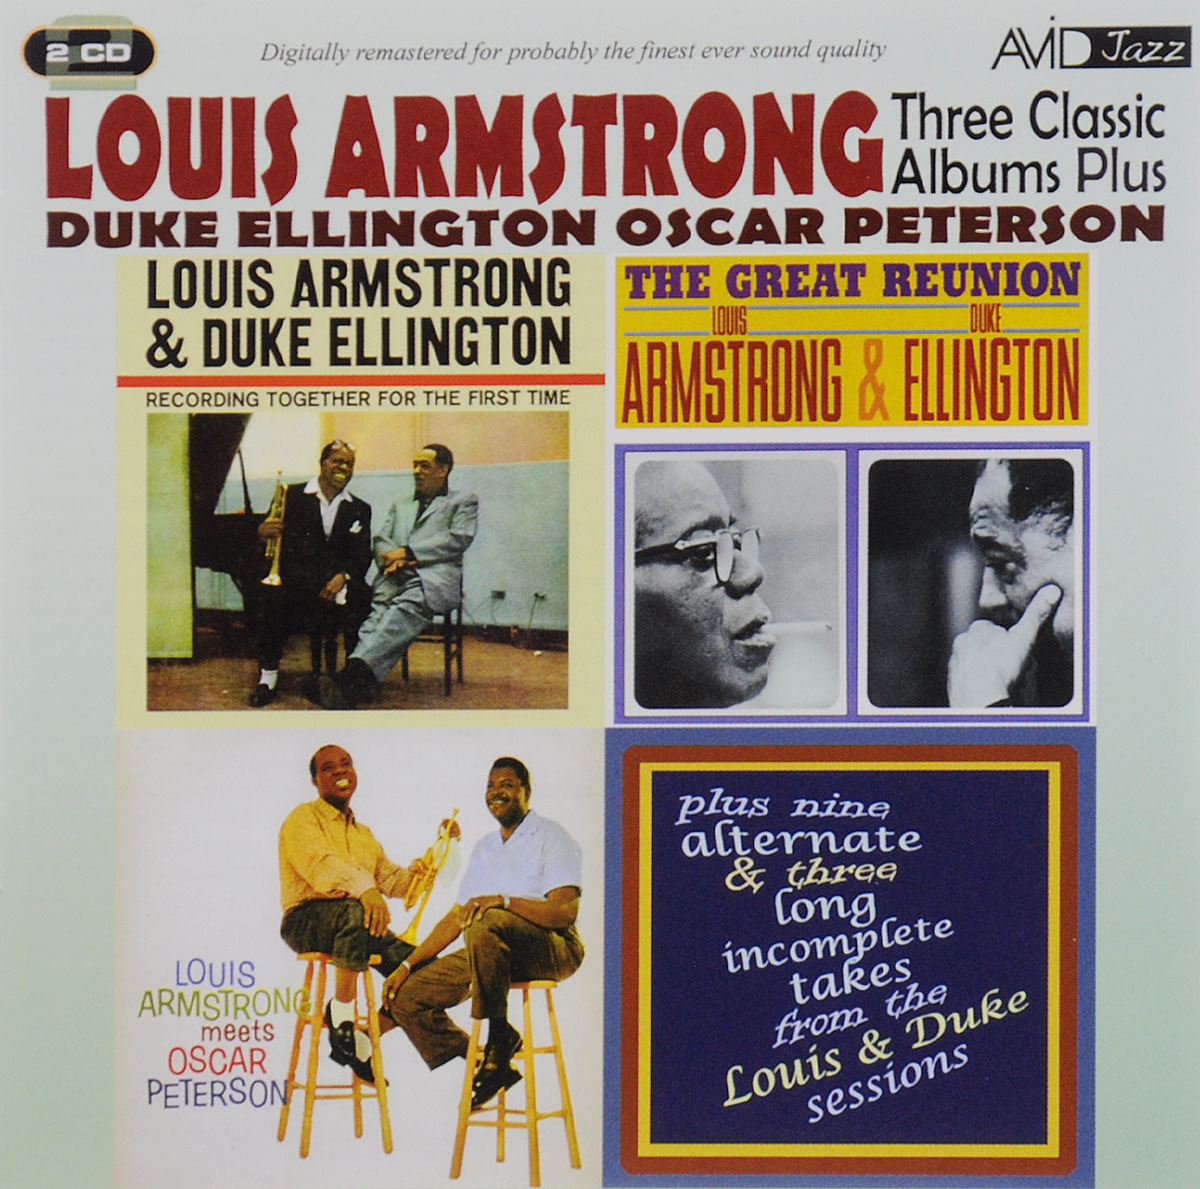 цена на Луи Армстронг,Дюк Эллингтон,Оскар Питерсон Avid Jazz. Louis Armstrong, Duke Ellington, Oscar Peterson. Three Classic Albums (2 CD)